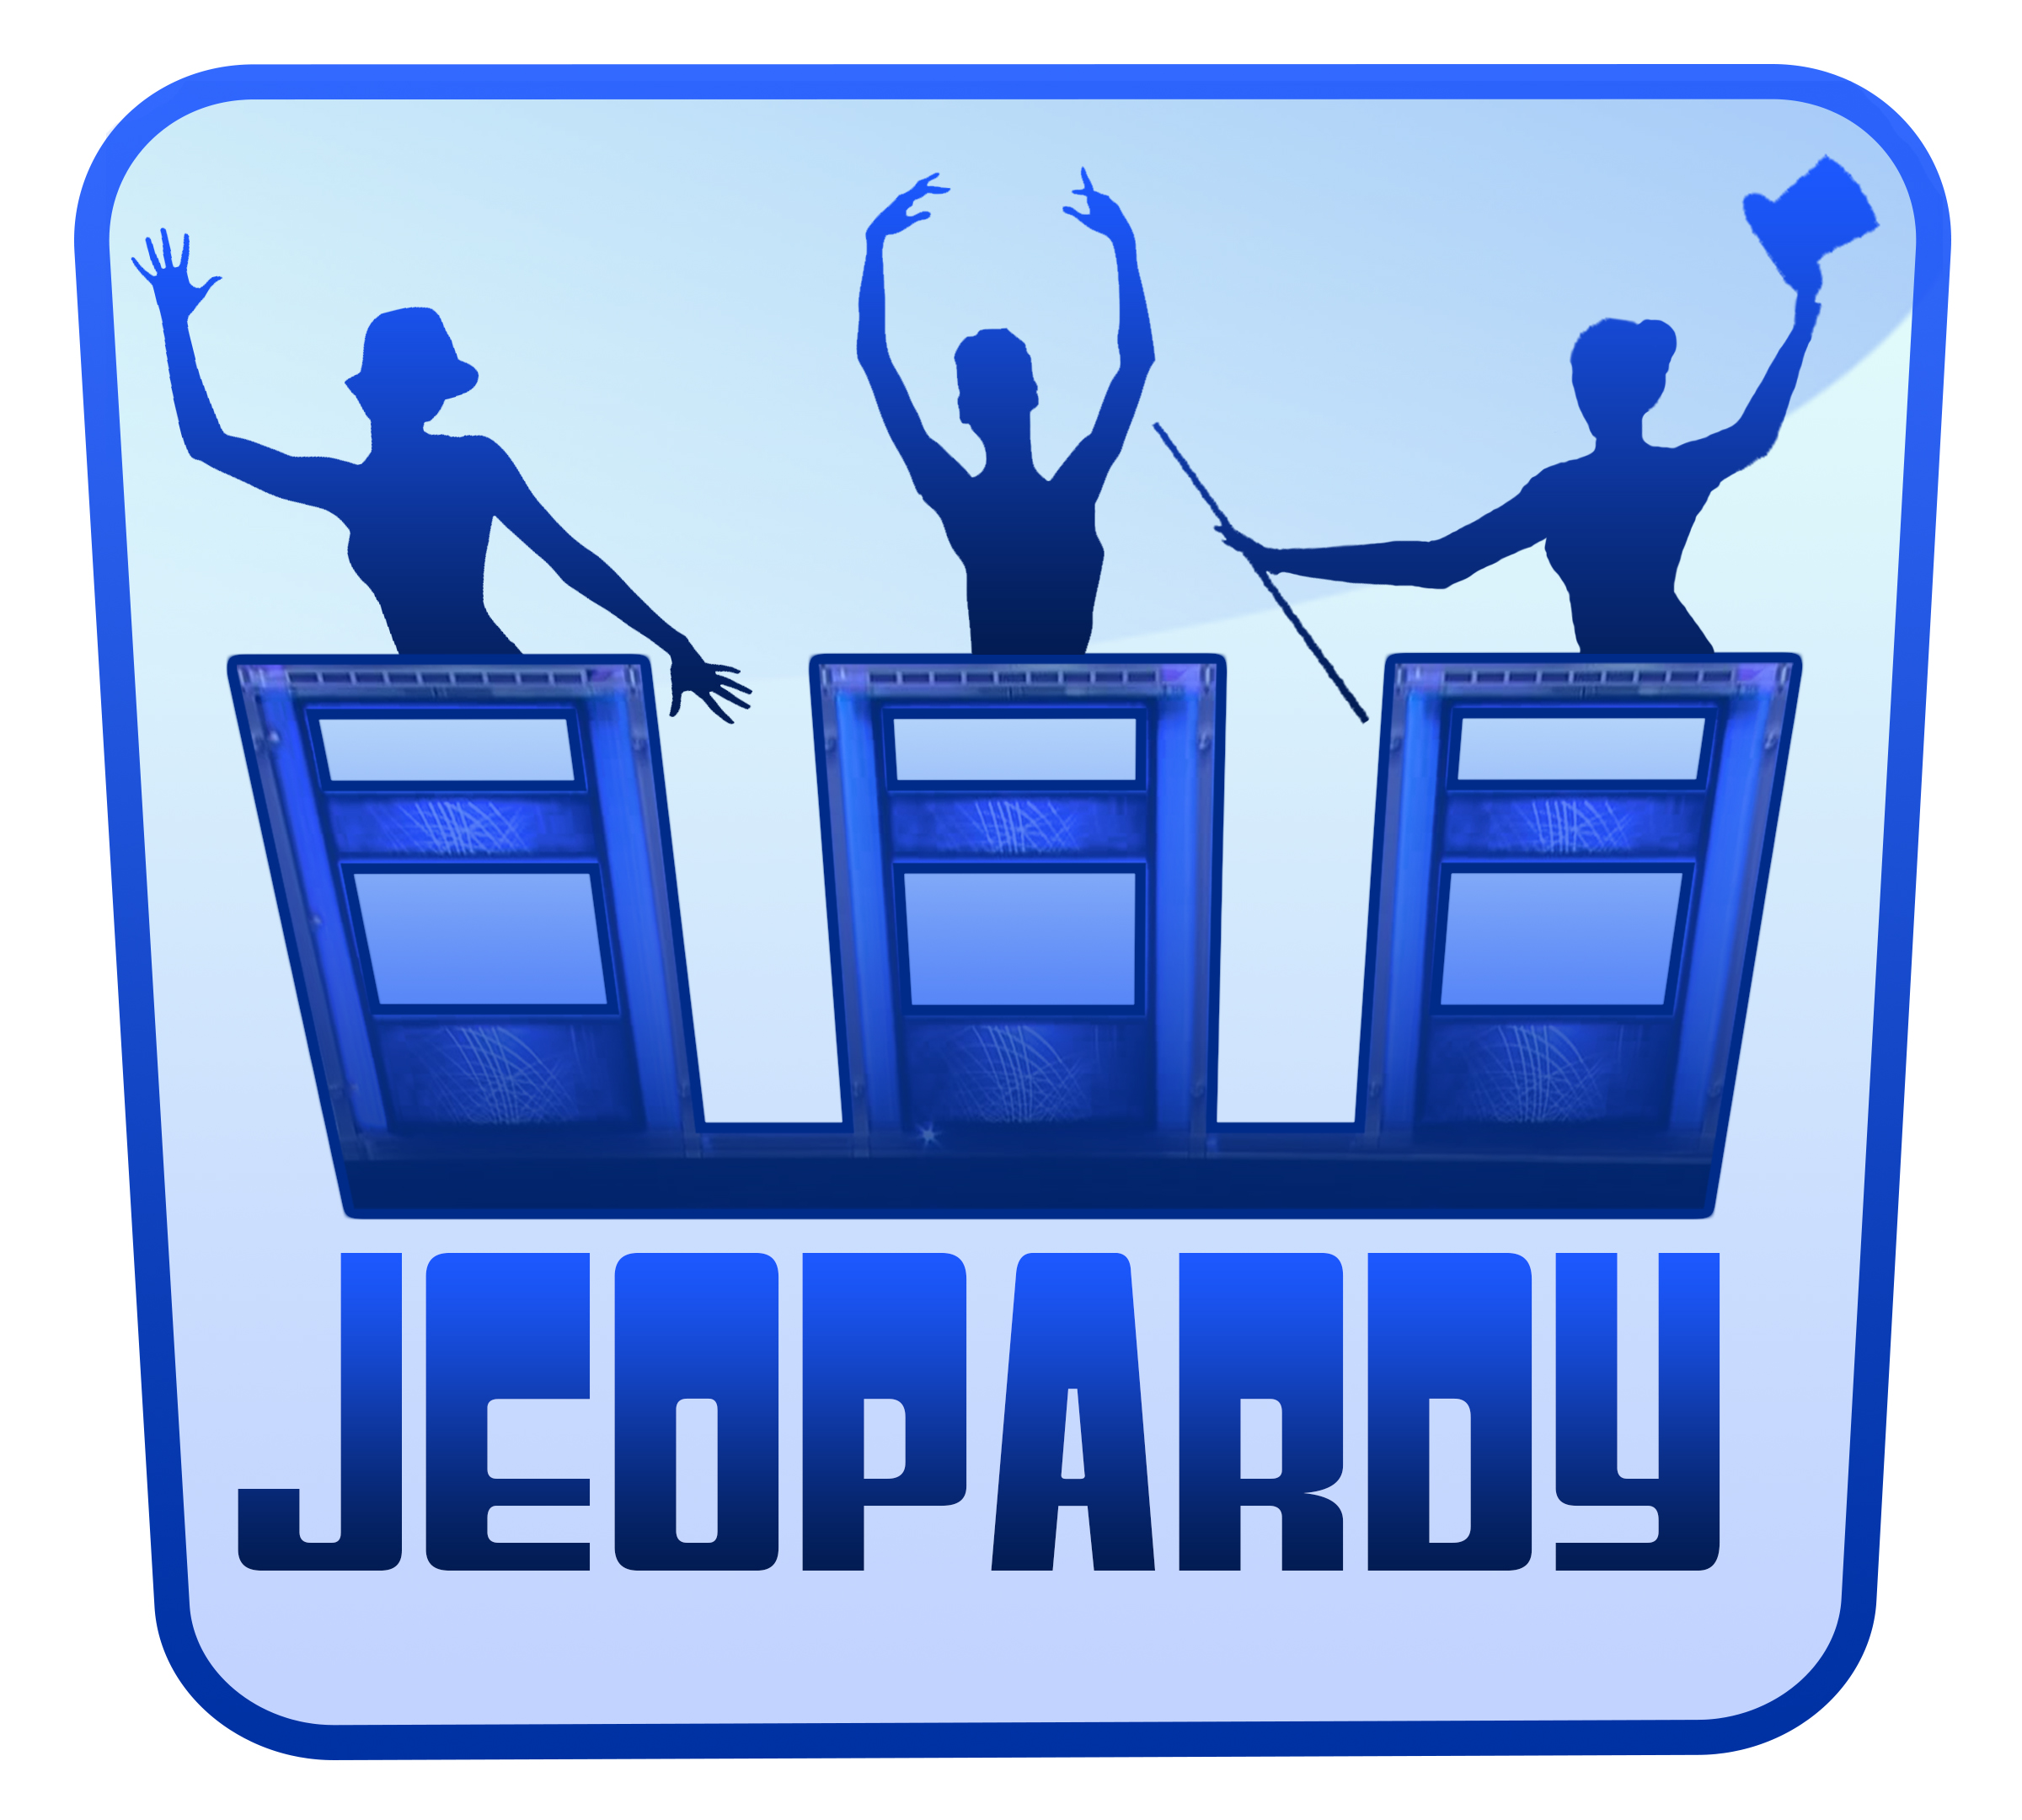 Jeopardy Clip Art (101+ images in Collection) Page 1.